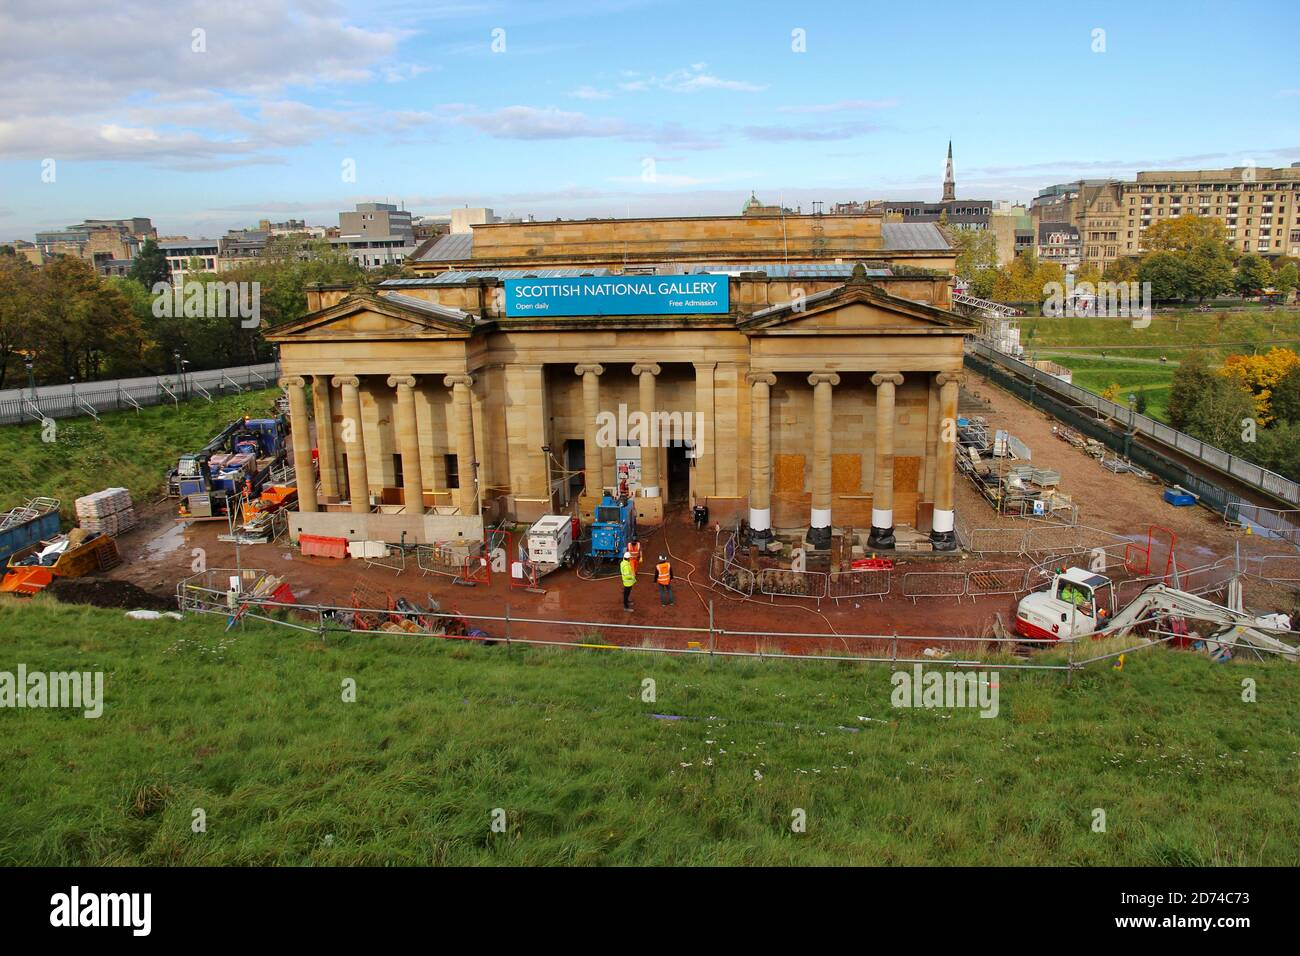 Renovation Work Being Carried Out Outside the Scottish National Gallery in Edinburgh Stock Photo